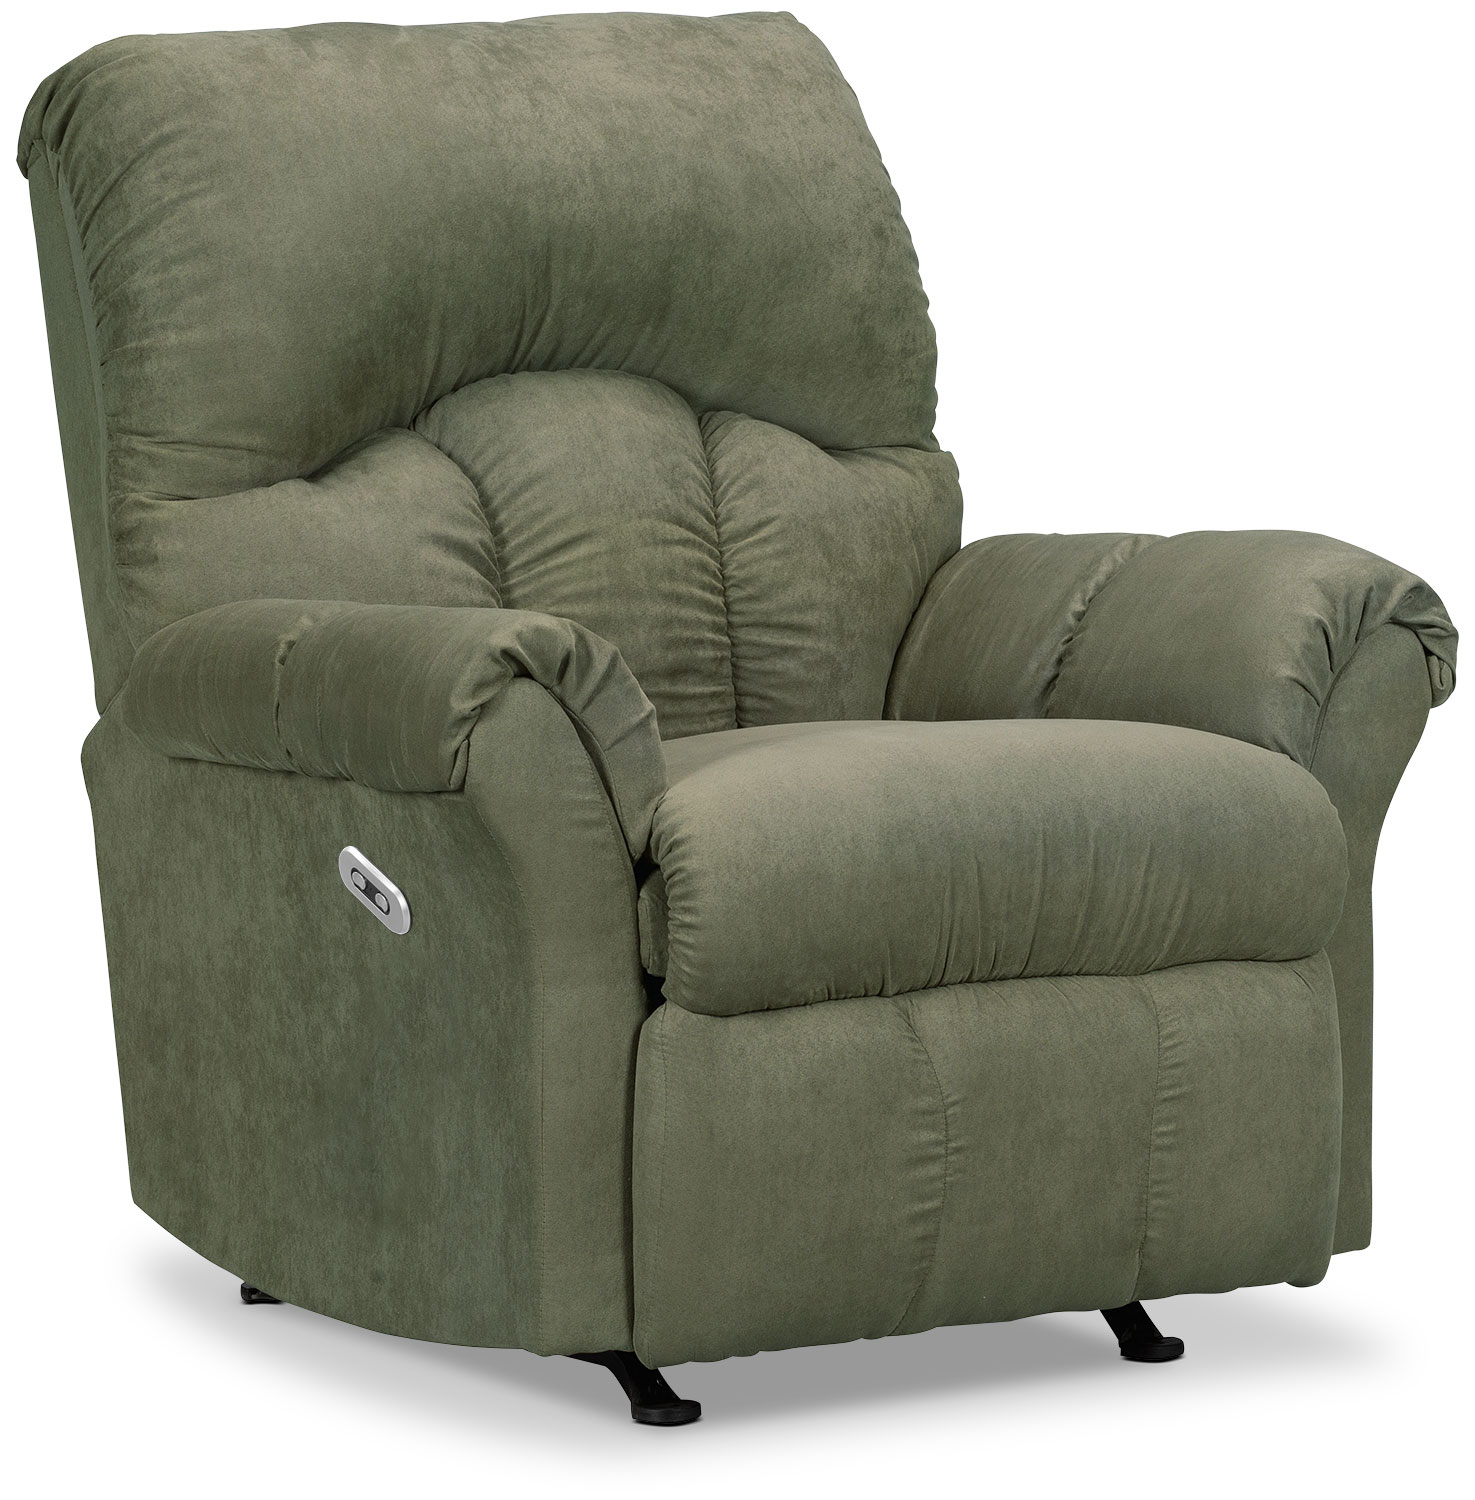 Living Room Furniture - Designed2B Recliner 6734 Microsuede Power Reclining Chair - Fern